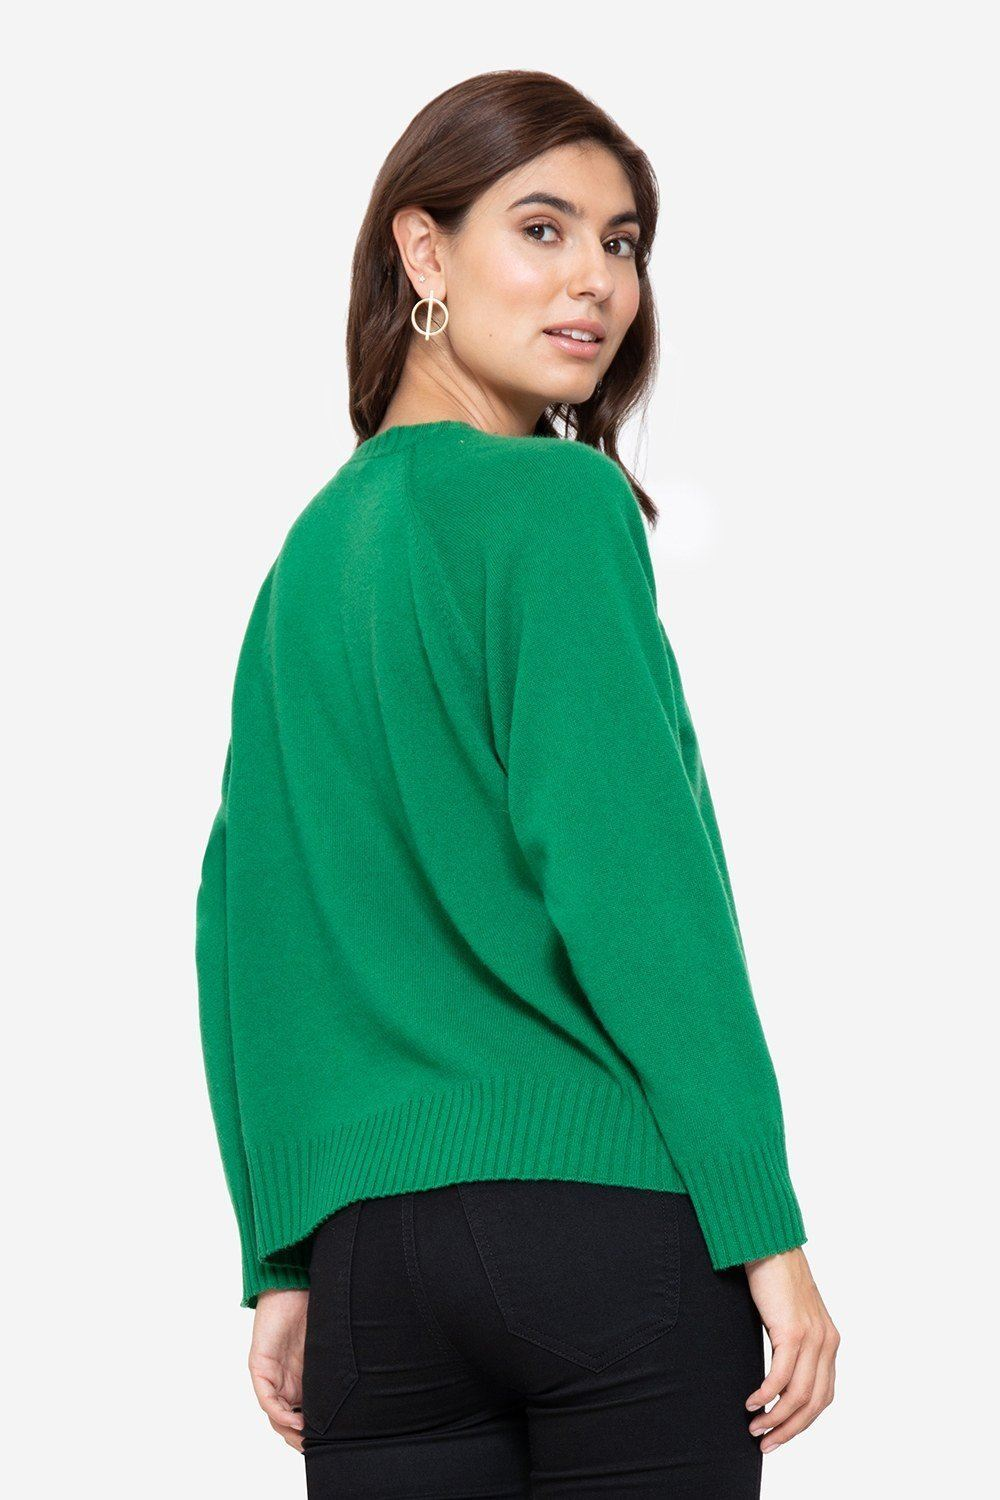 Soft green cashmere nursing jumper with buttons access, back view